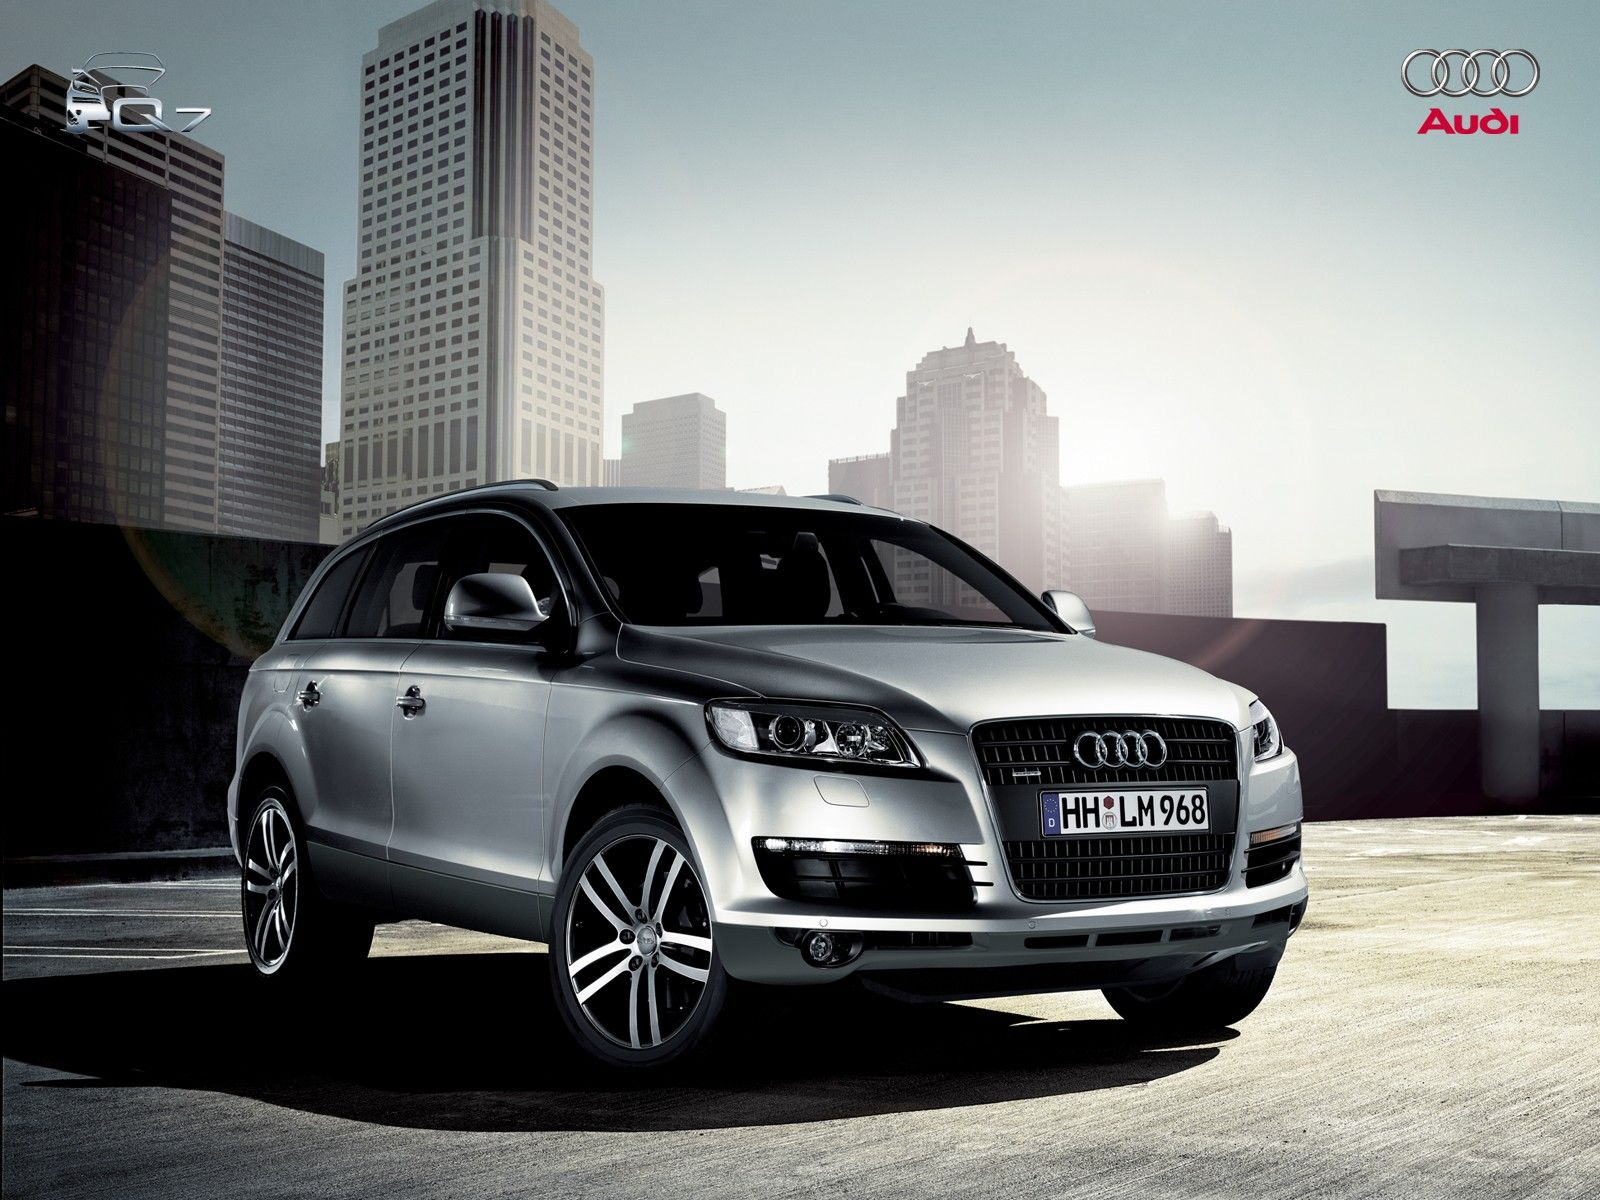 Car Wallpapers Hd Audi Q7 Silver Audi Pinterest Audi Q7 Audi